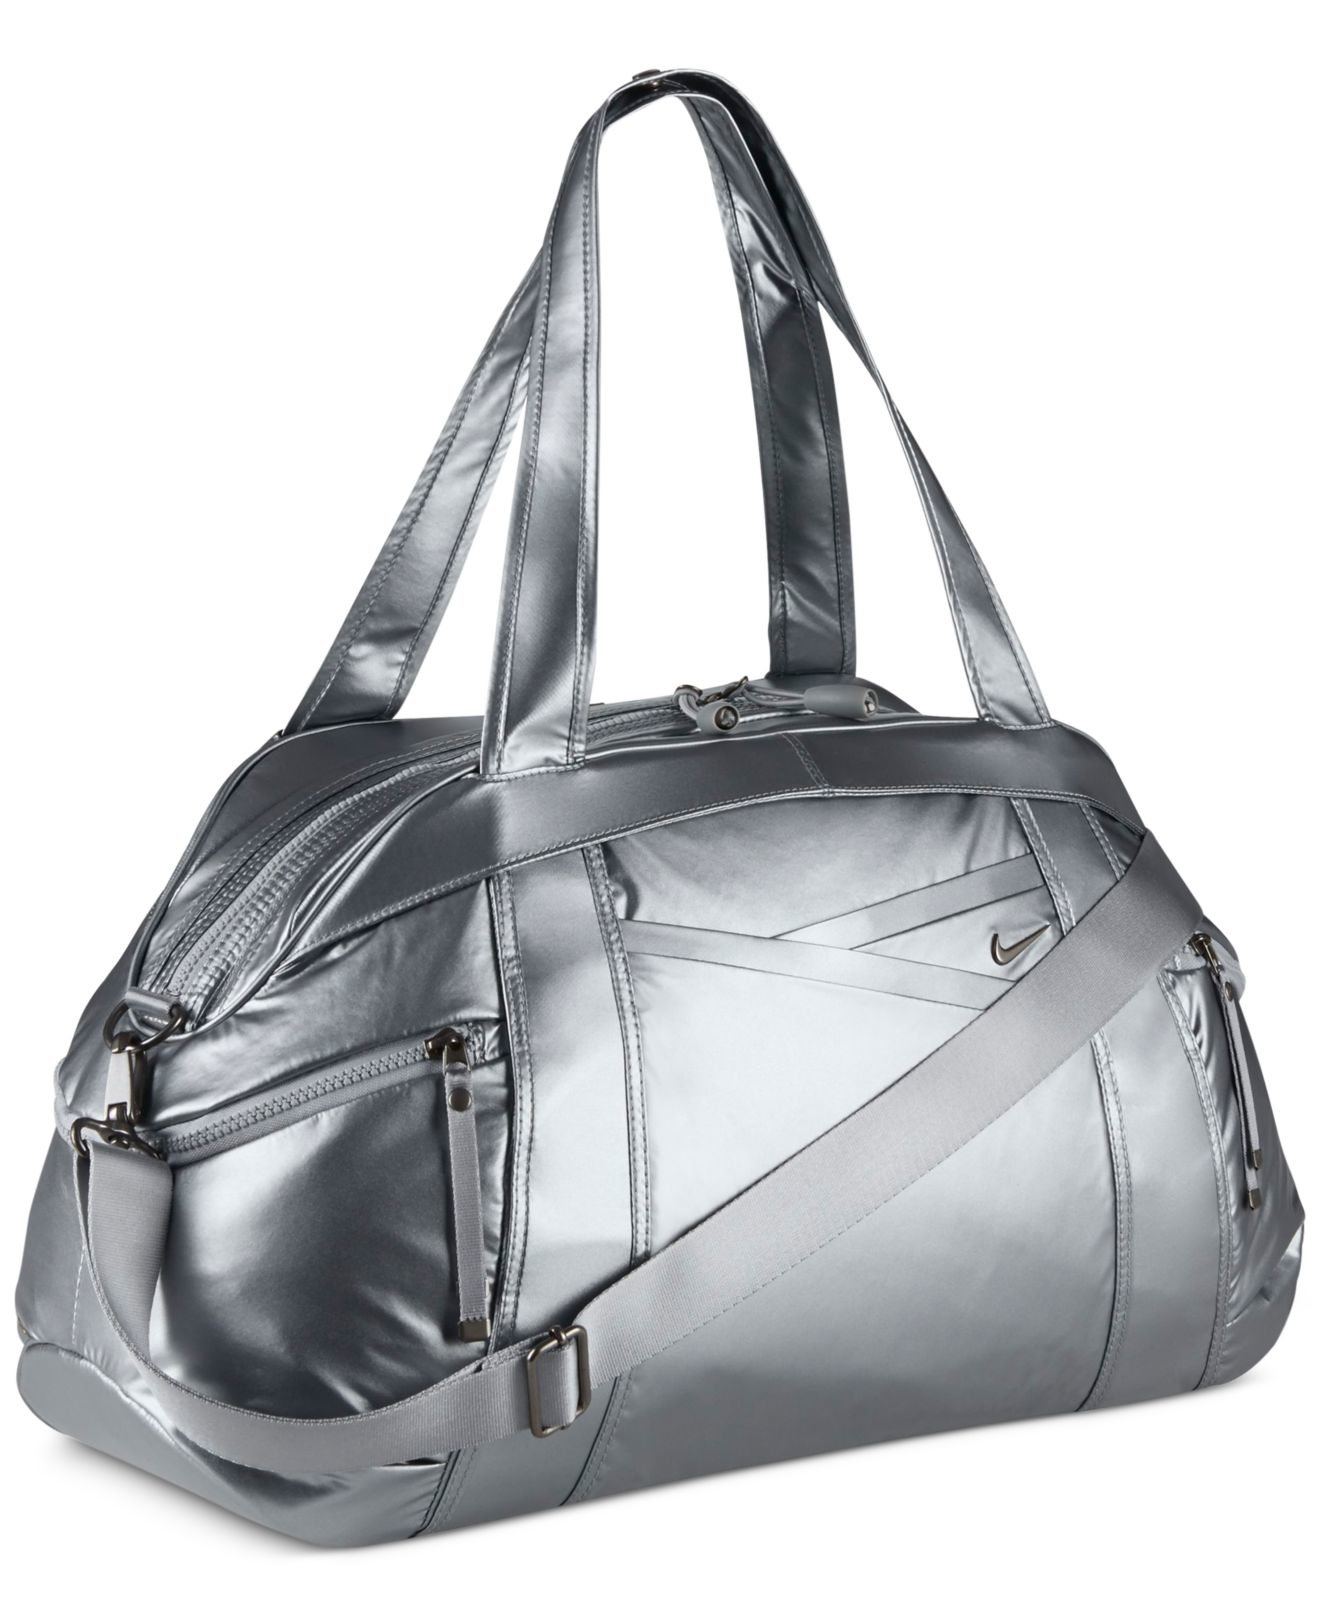 Gallery Previously Sold At Macy S Women Duffel Bags